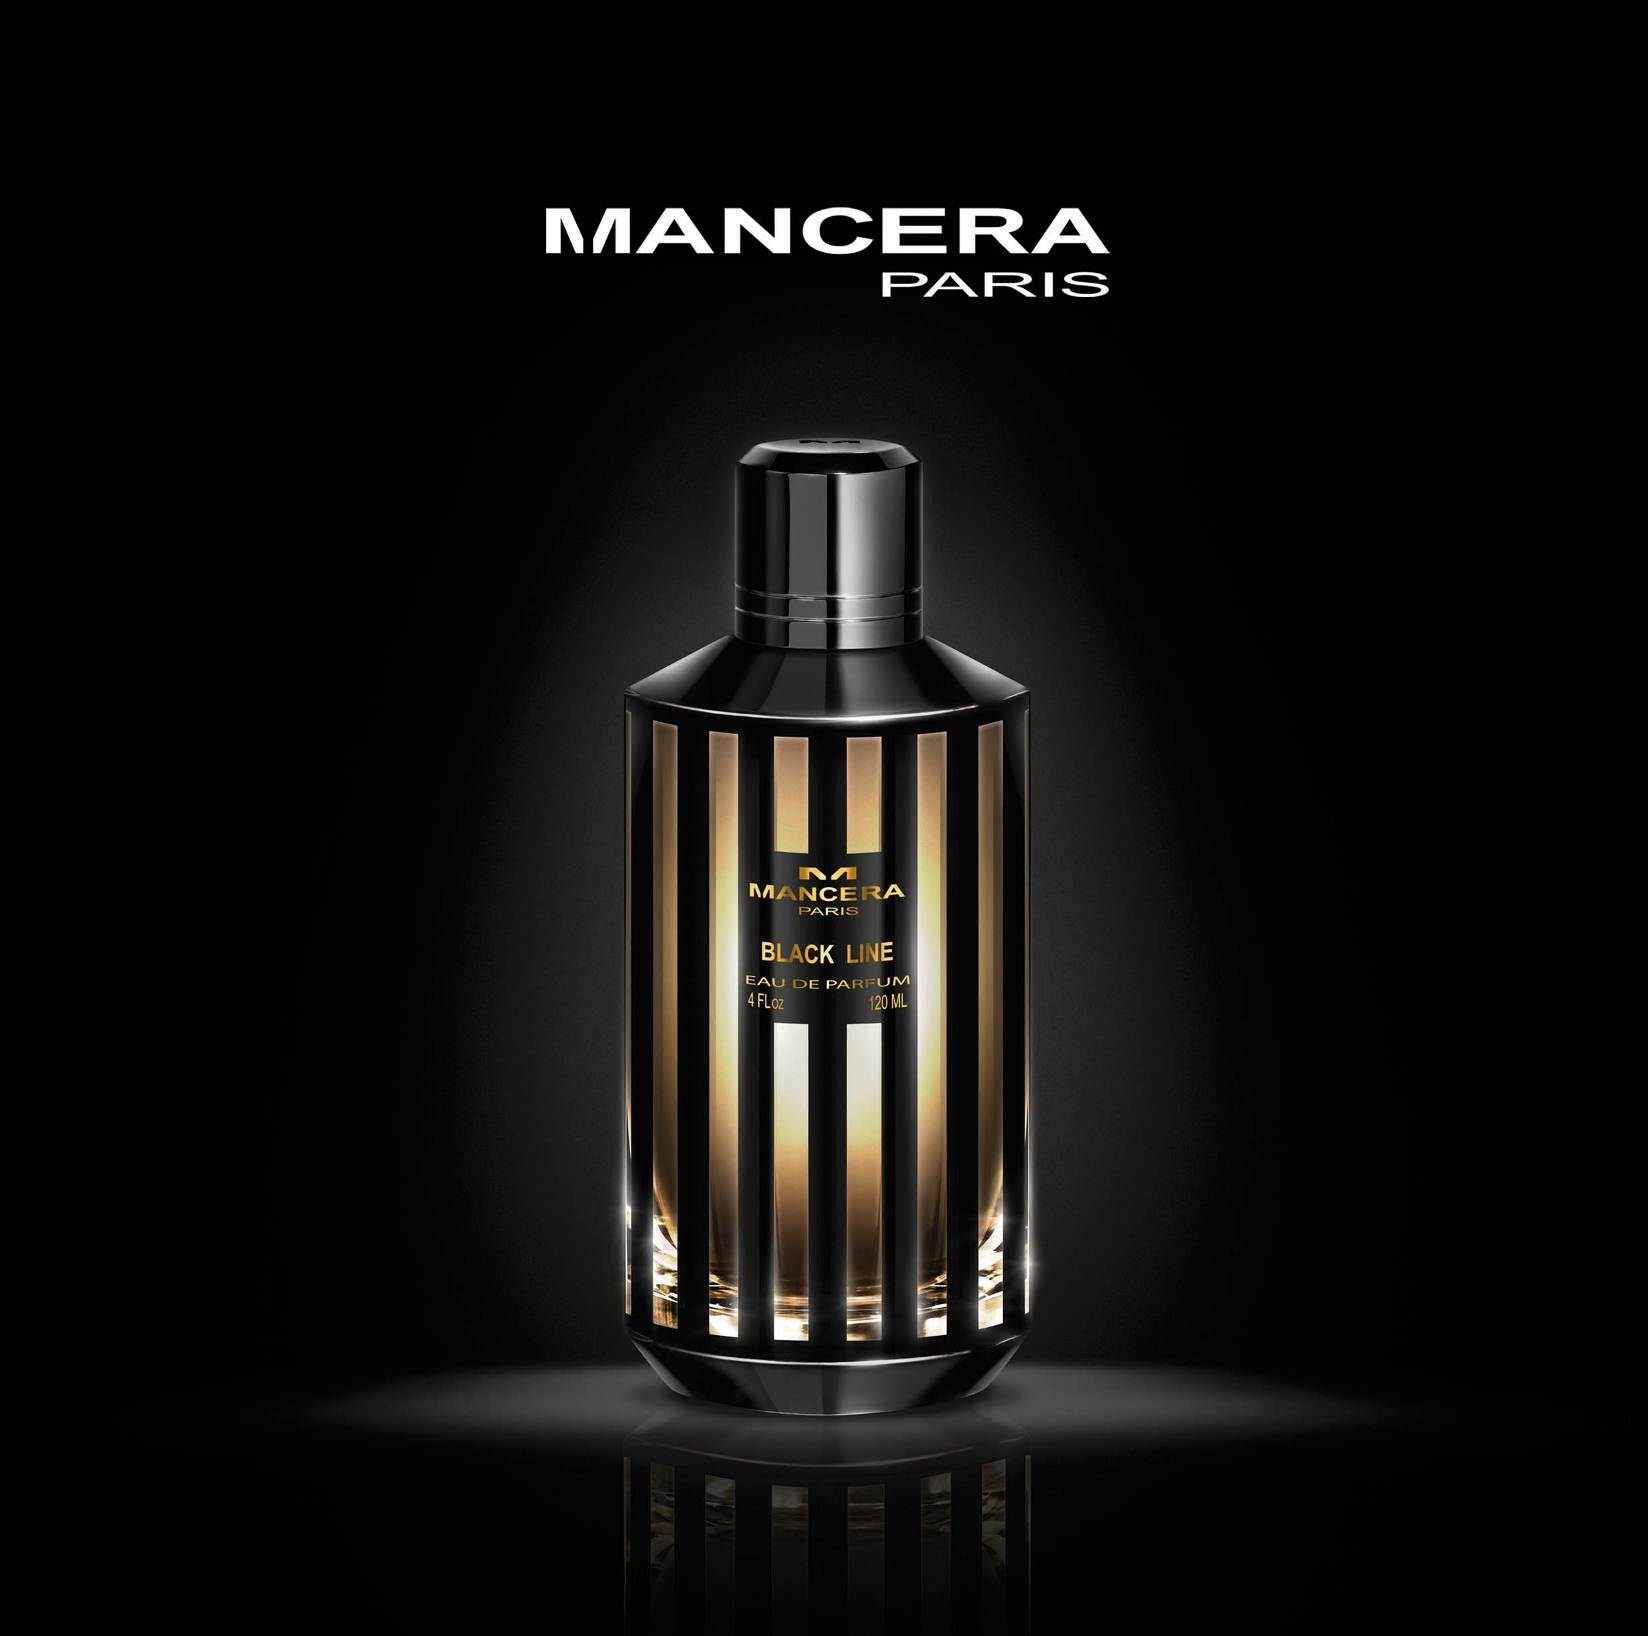 Fall Wallpaper Note Black Line Mancera Perfume A Fragrance For Women And Men